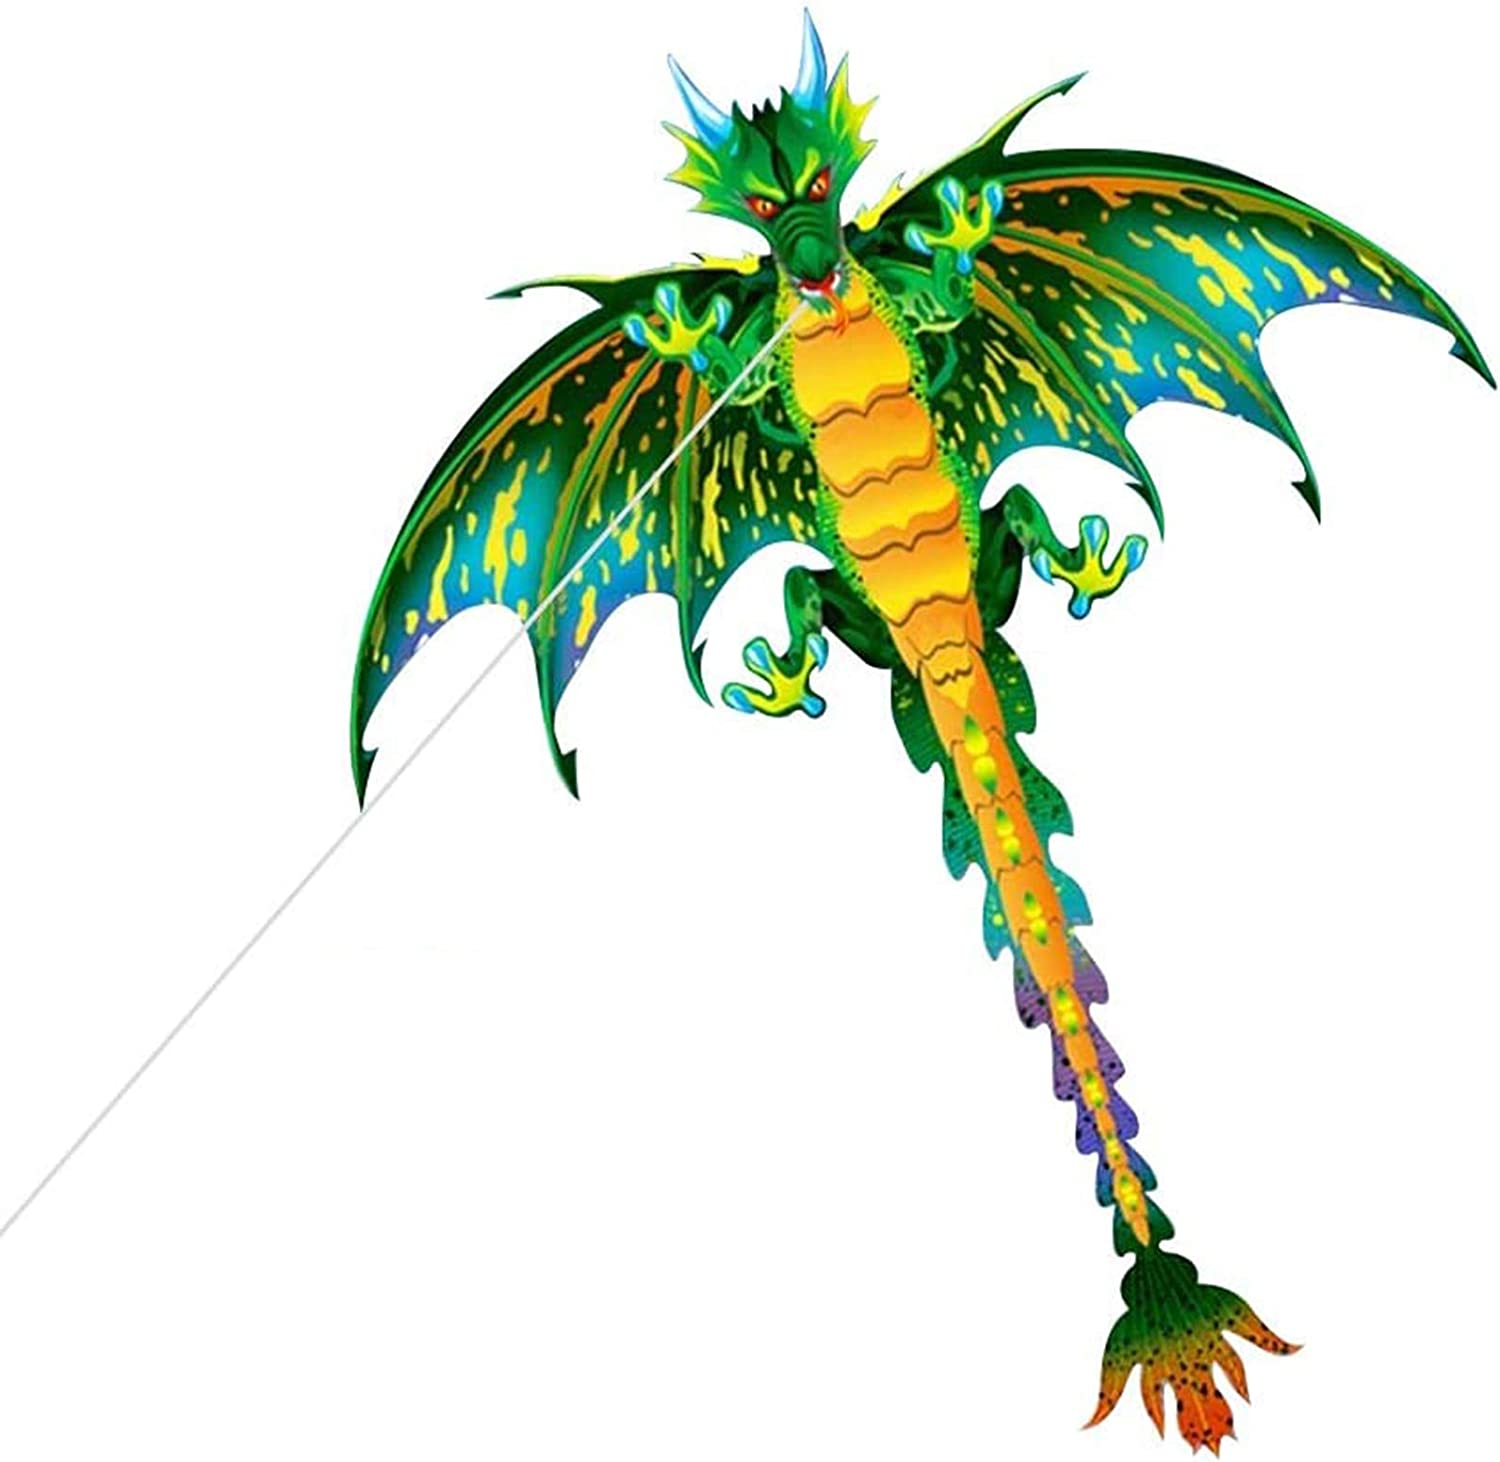 HOMEE Dragon Kite, 61inch Pterosaur Kite for Kids  Adults, Suit